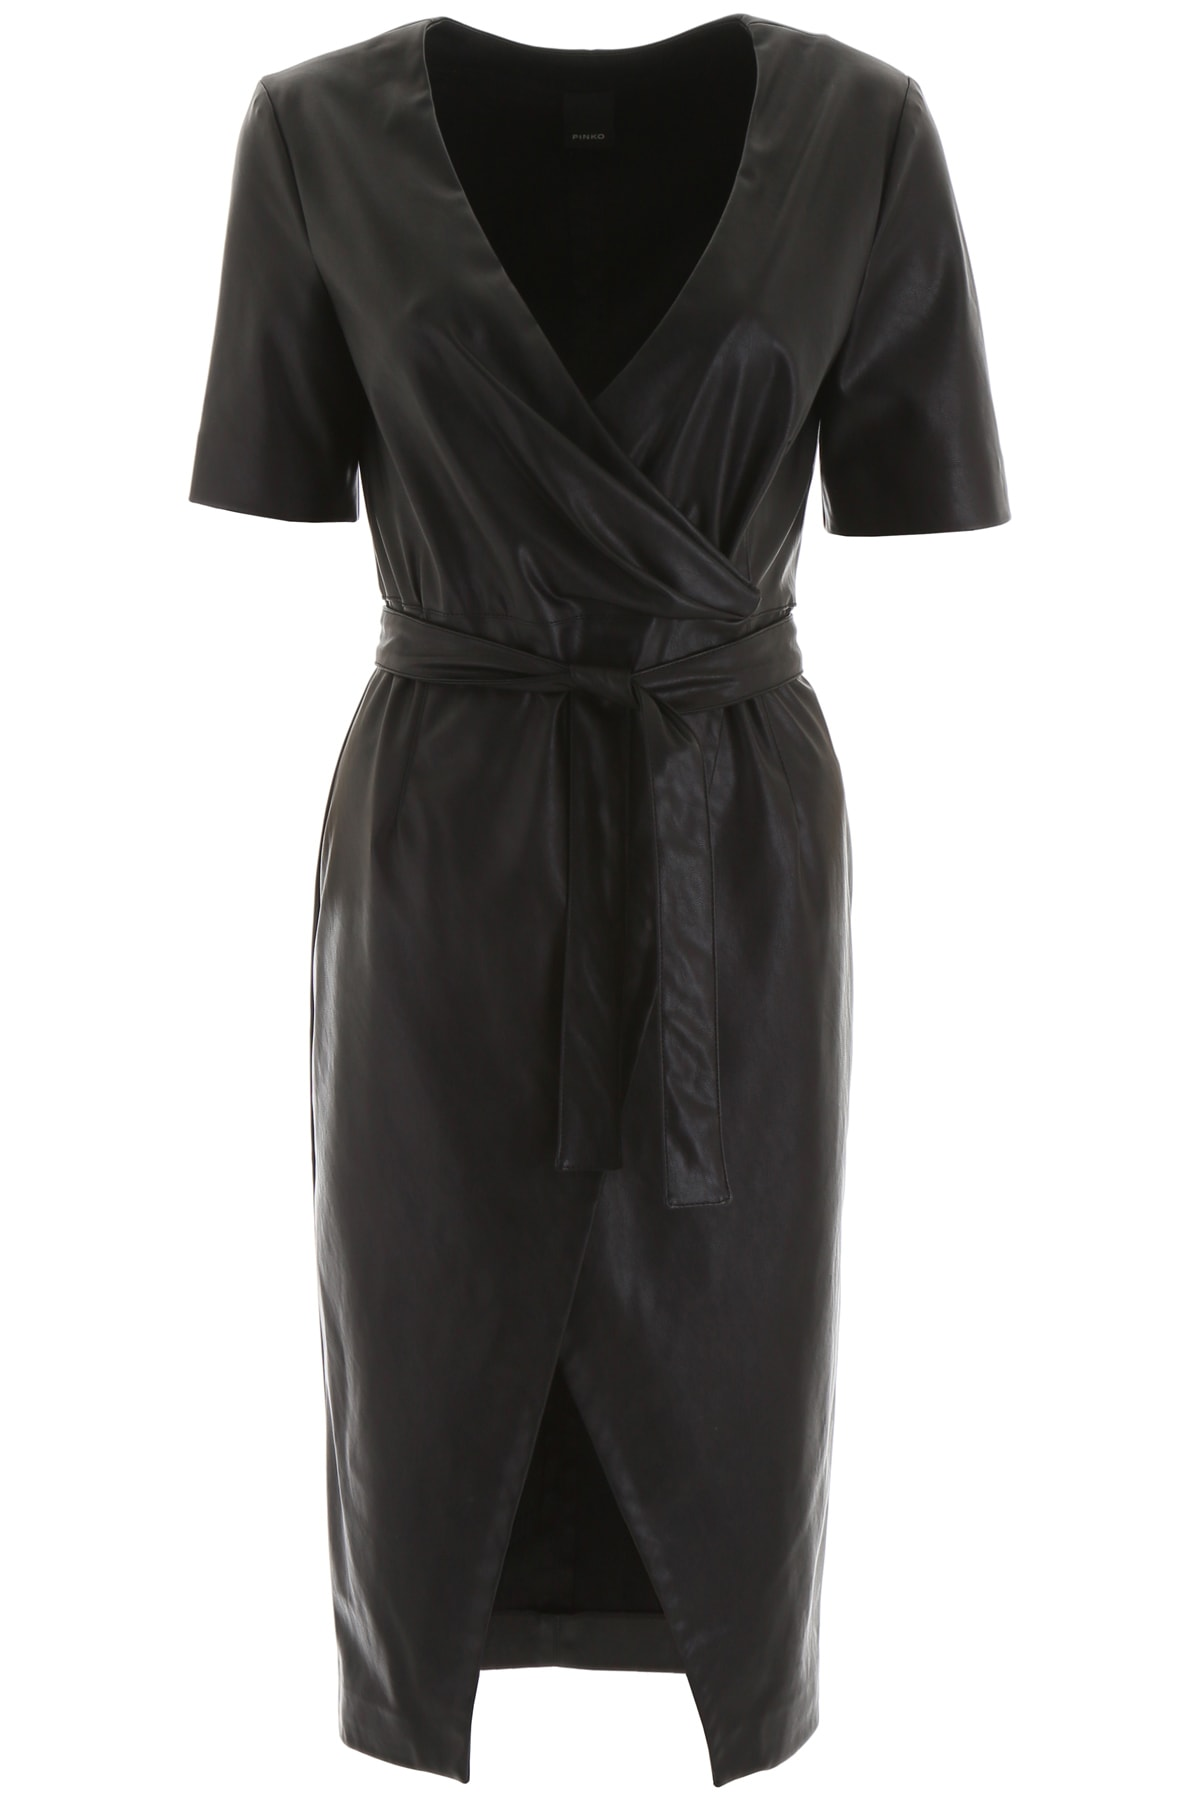 Pinko Faux Leather Dress